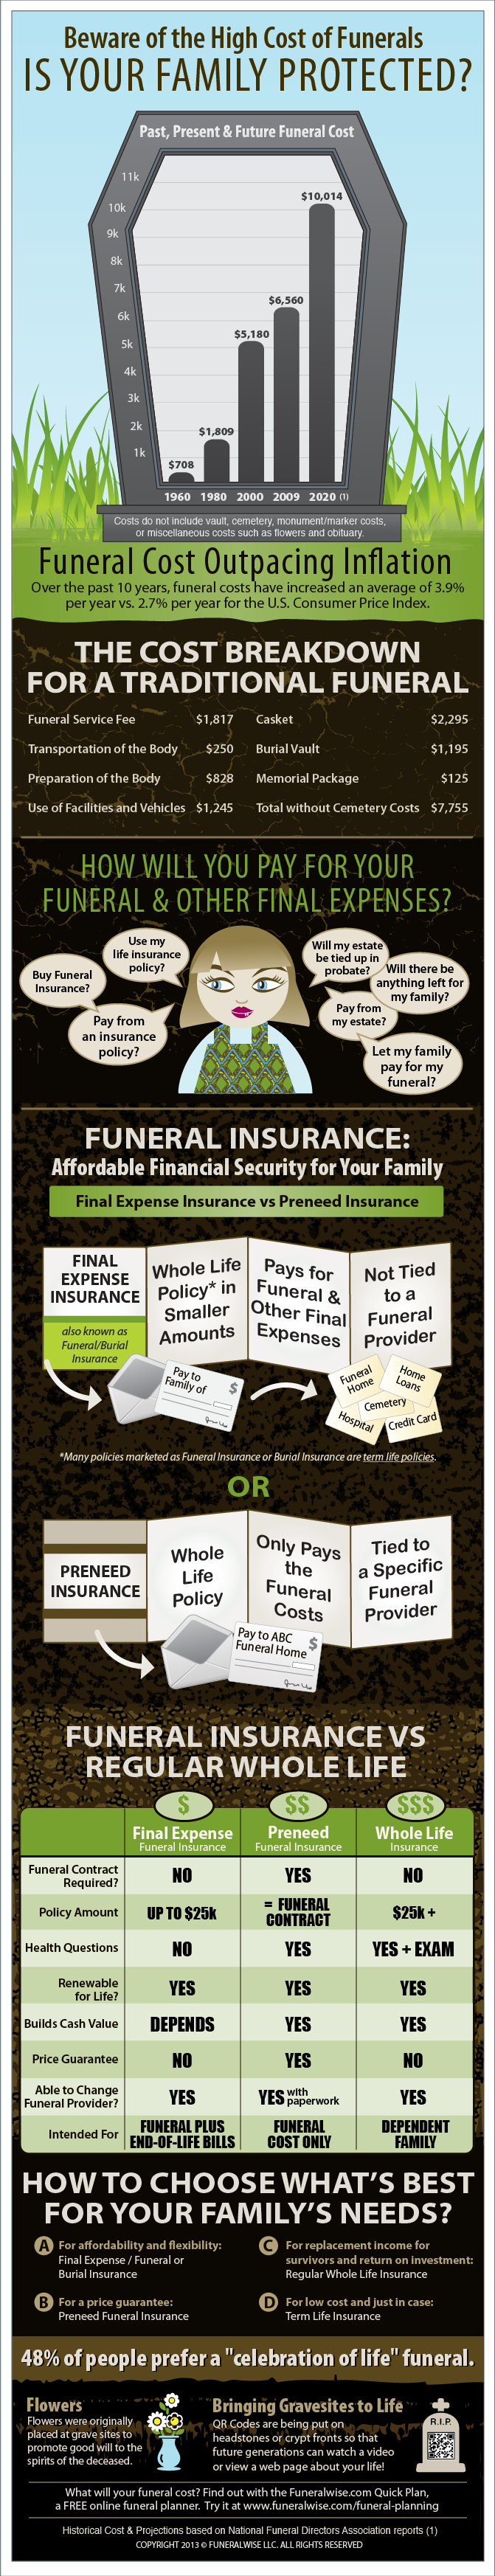 Average Cost of Funeral